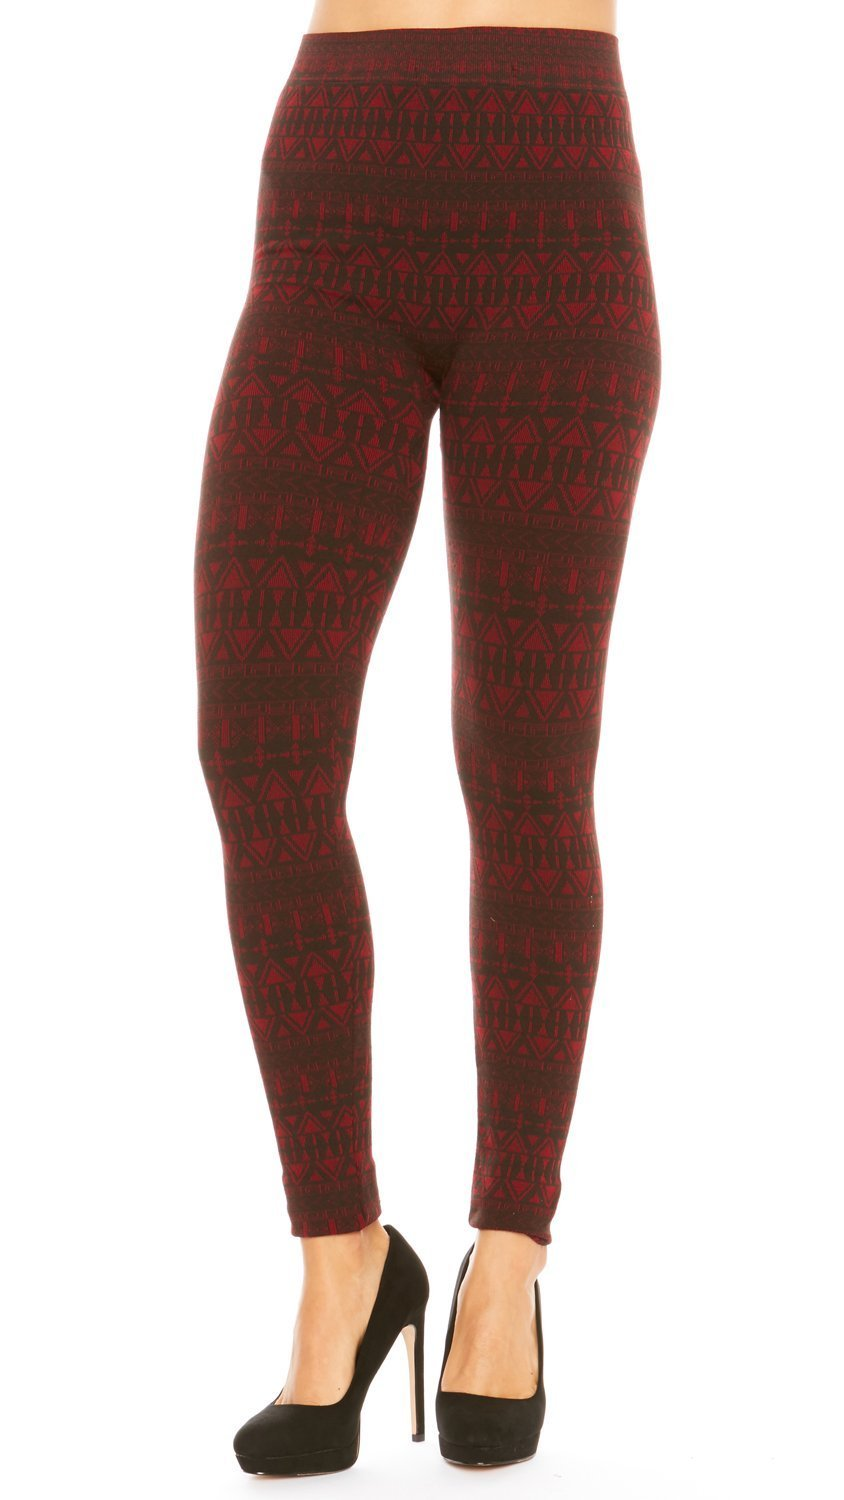 just one Leggings for Women Soft Cotton Blend Comfort Aztec Print (Black/Red, Size S) by just one